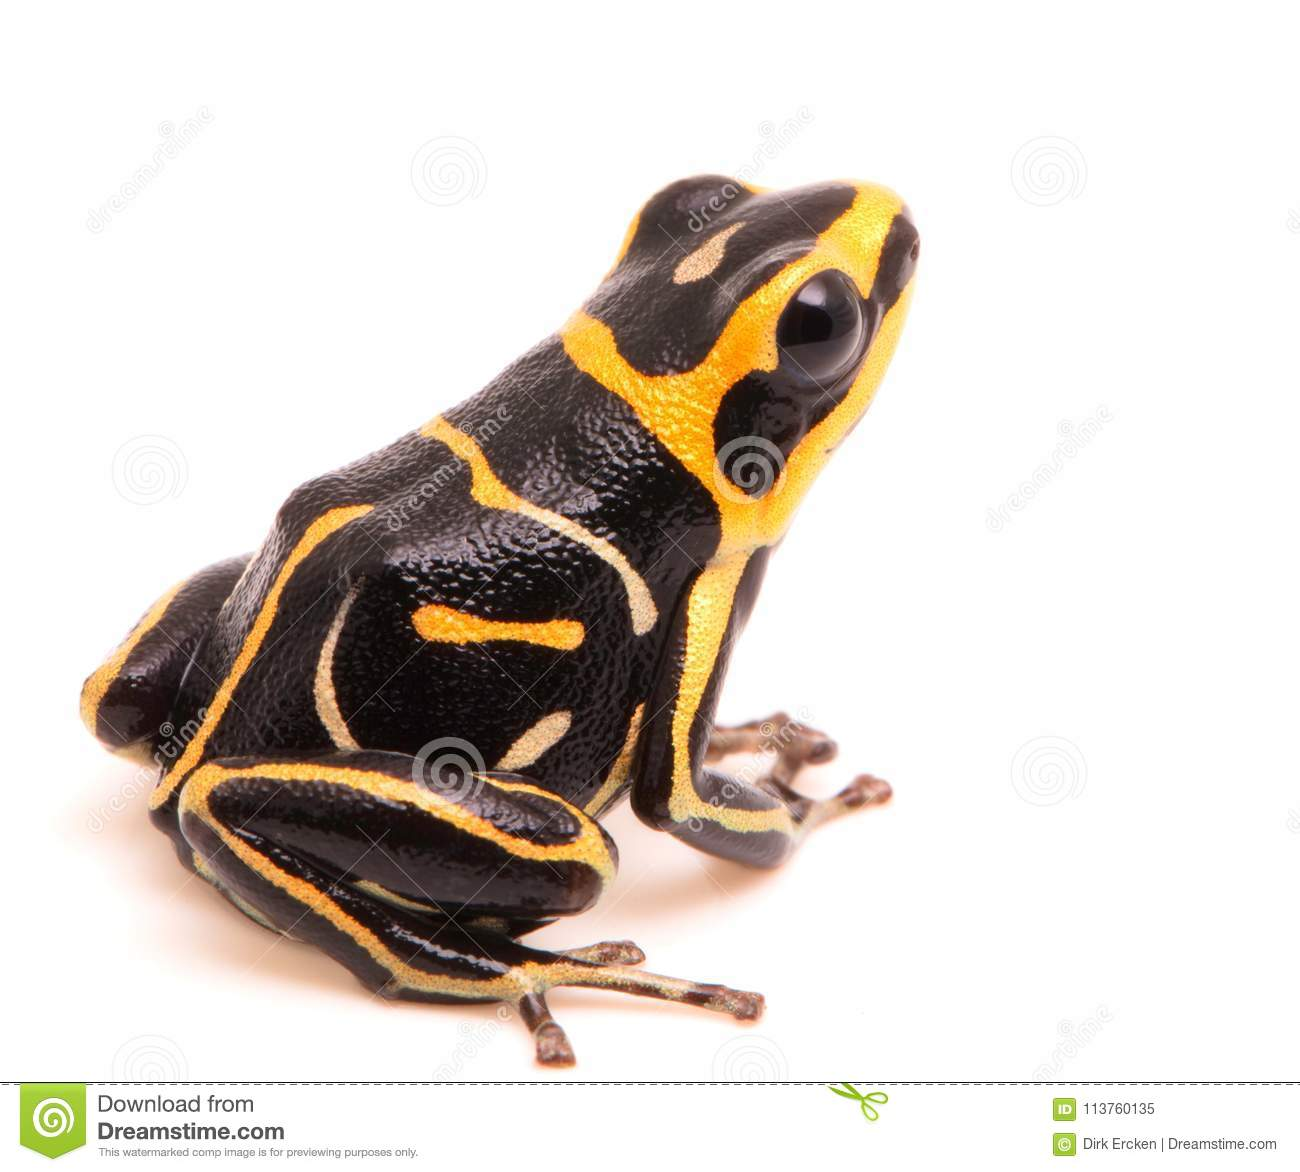 Red headed poison dart or arrow frog on white background